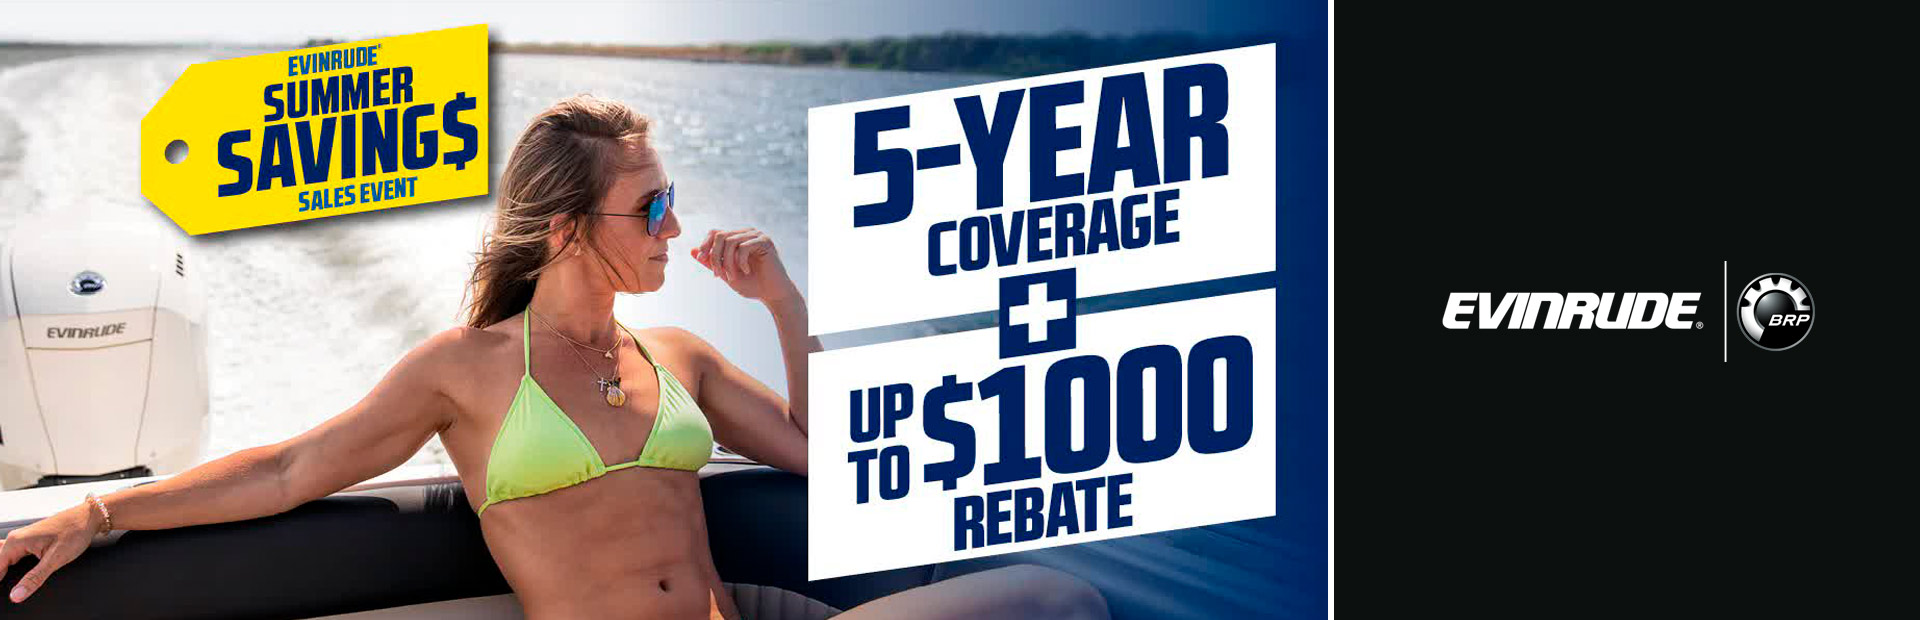 Evinrude: Summer Savings